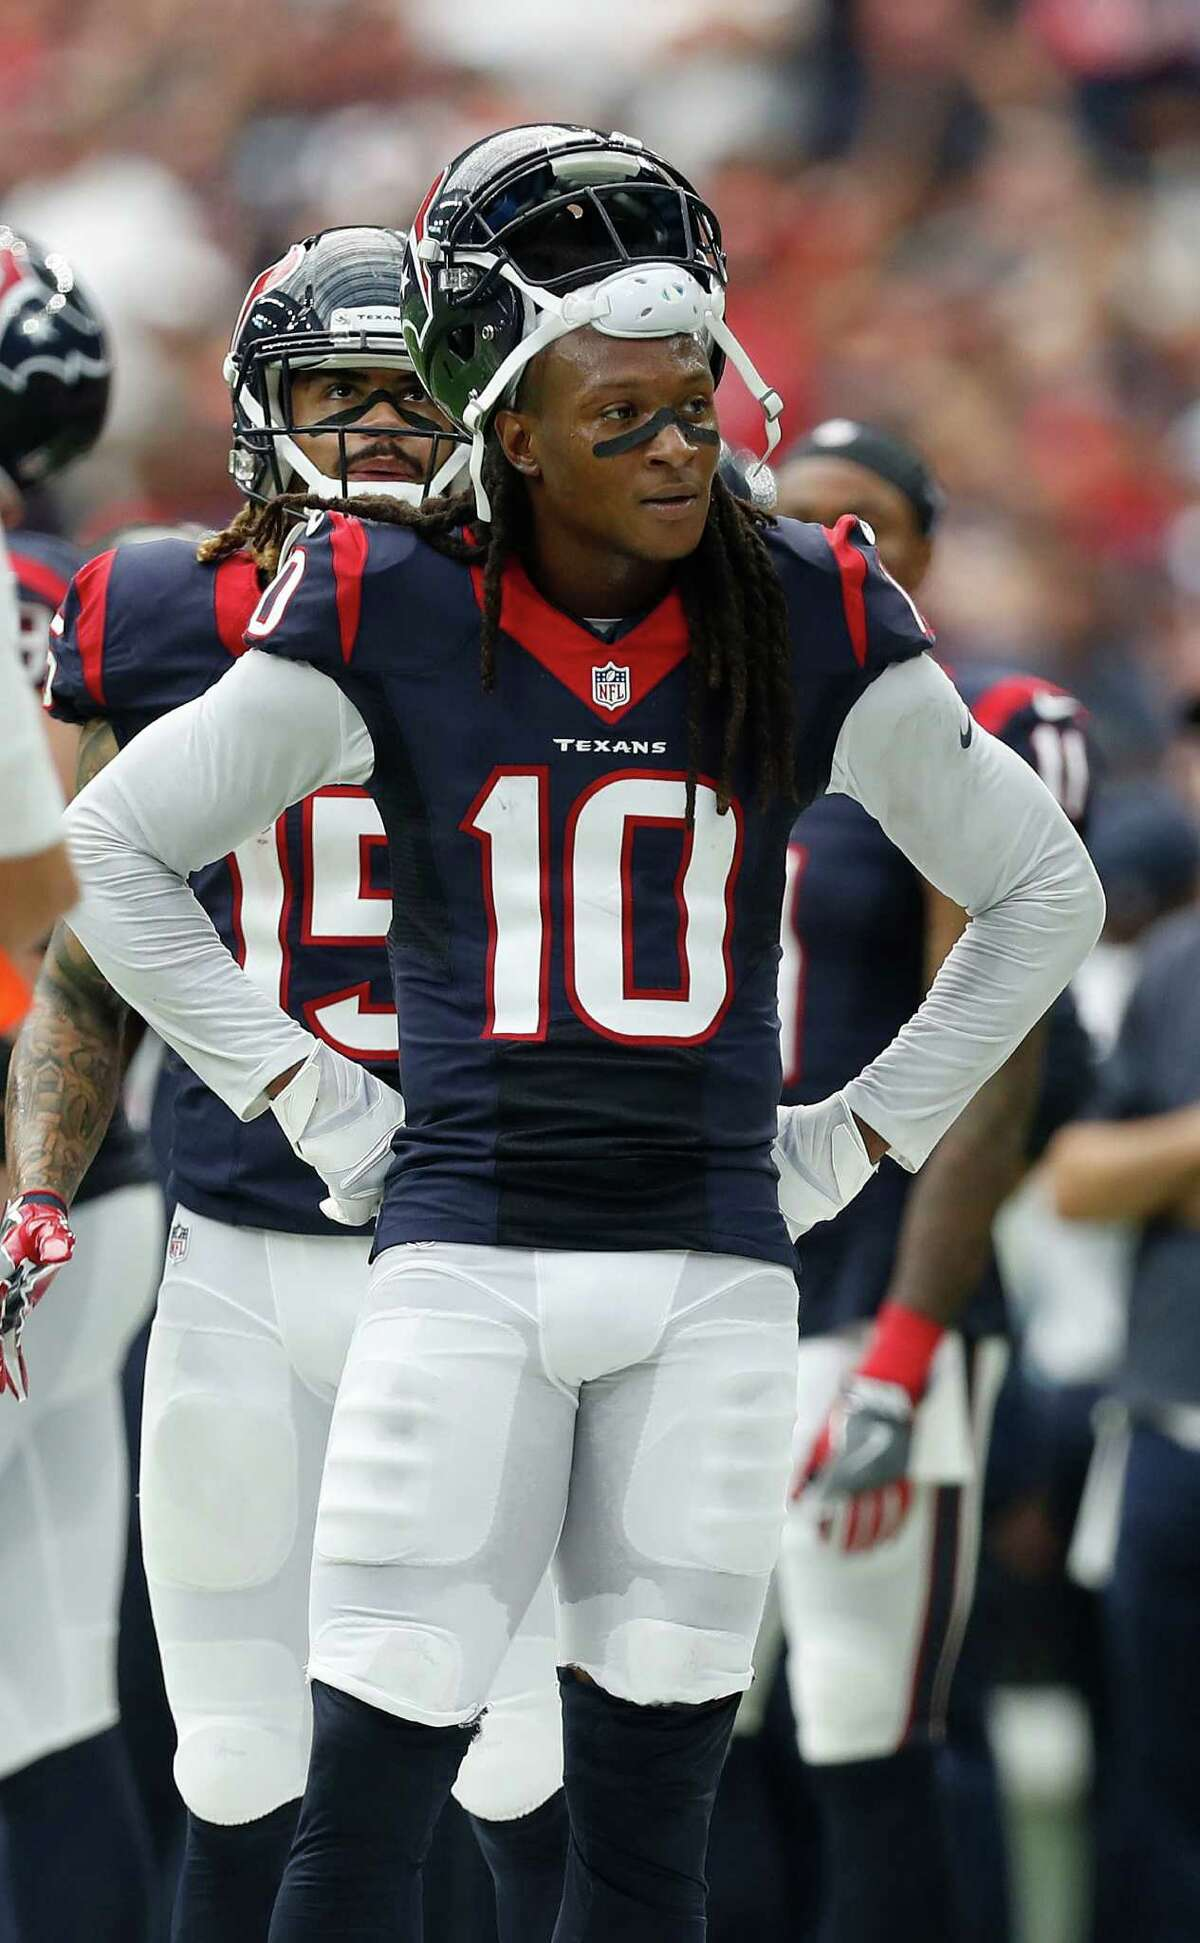 Houston Texans wide receiver DeAndre Hopkins (10) argues with a referee that his catch in the end zone should have been called a touchdown during the second quarter of an NFL football game at NRG Stadium, Sunday, Sept. 18, 2016 in Houston.